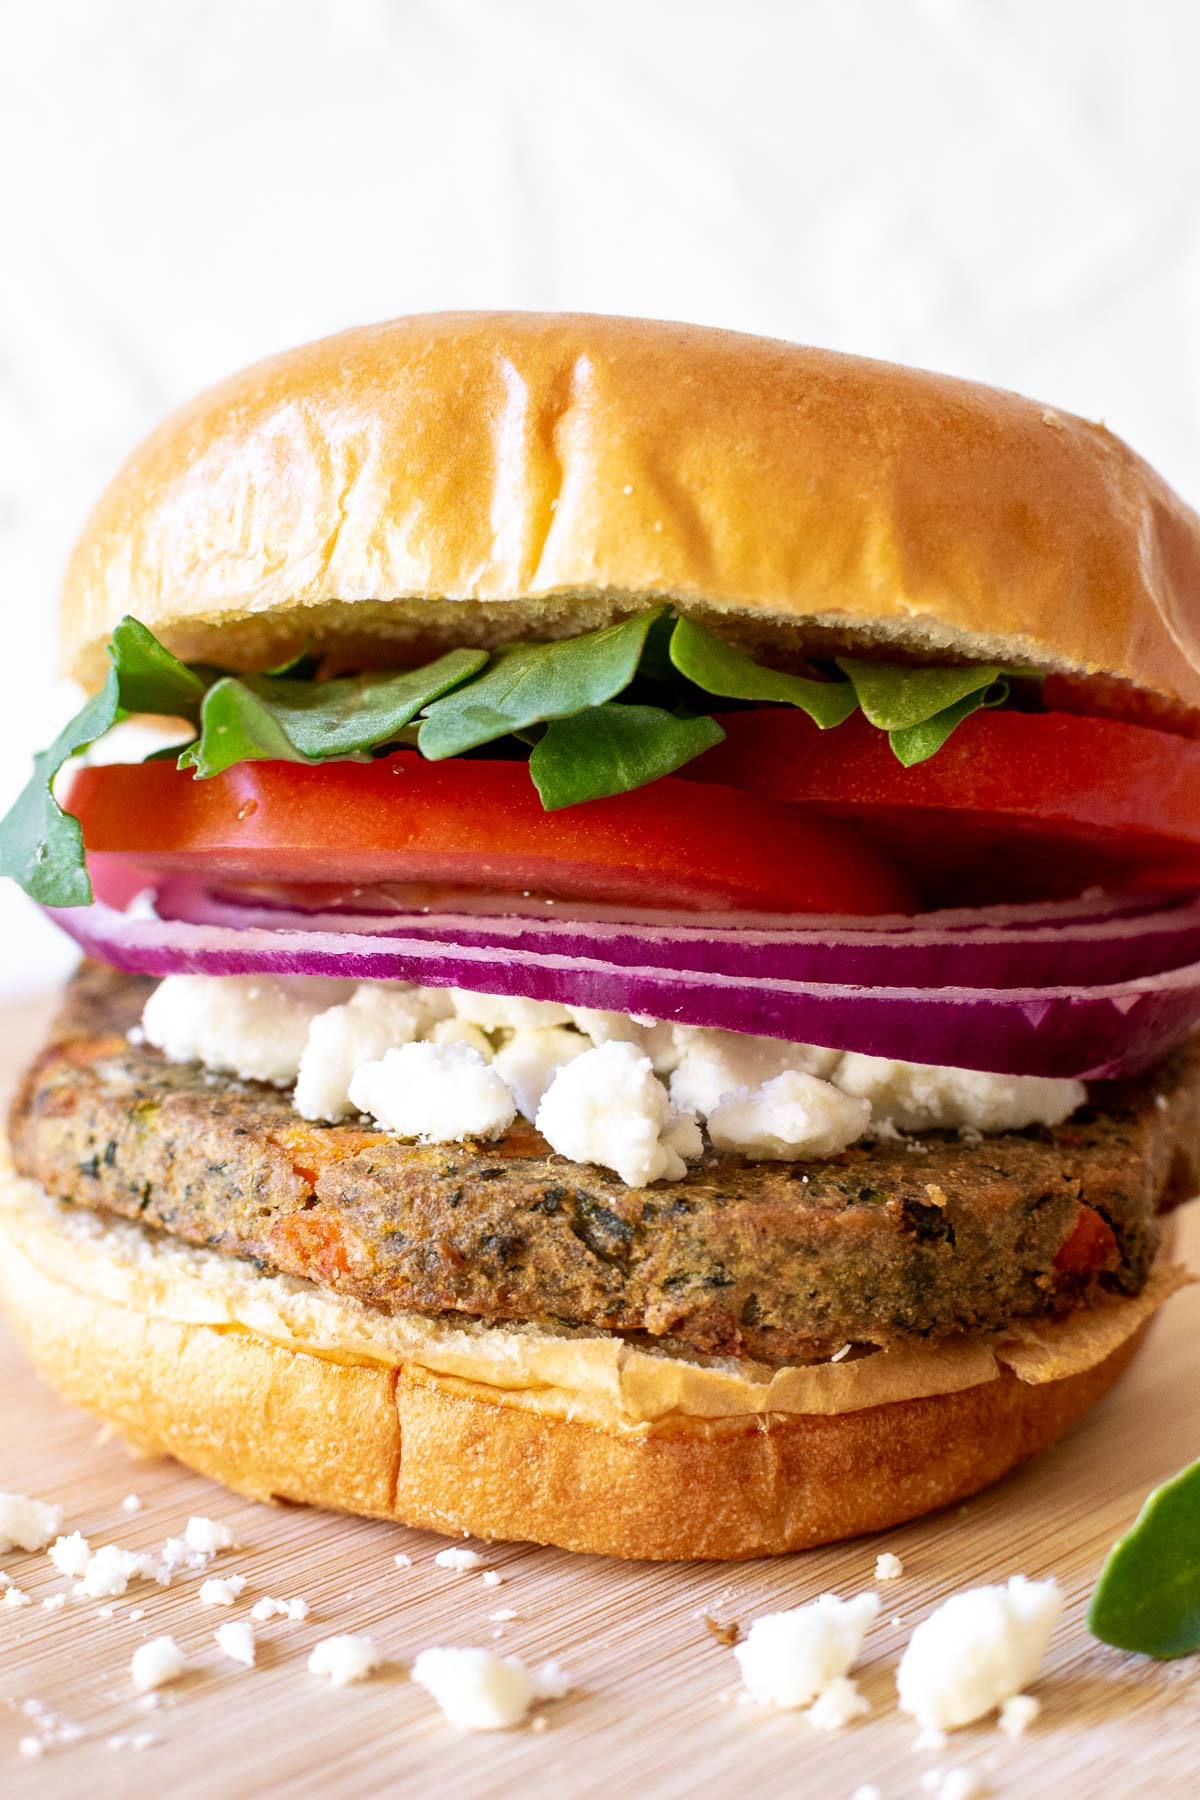 Simple veggie burger with lettuce, onions, tomatoes and feta cheese.